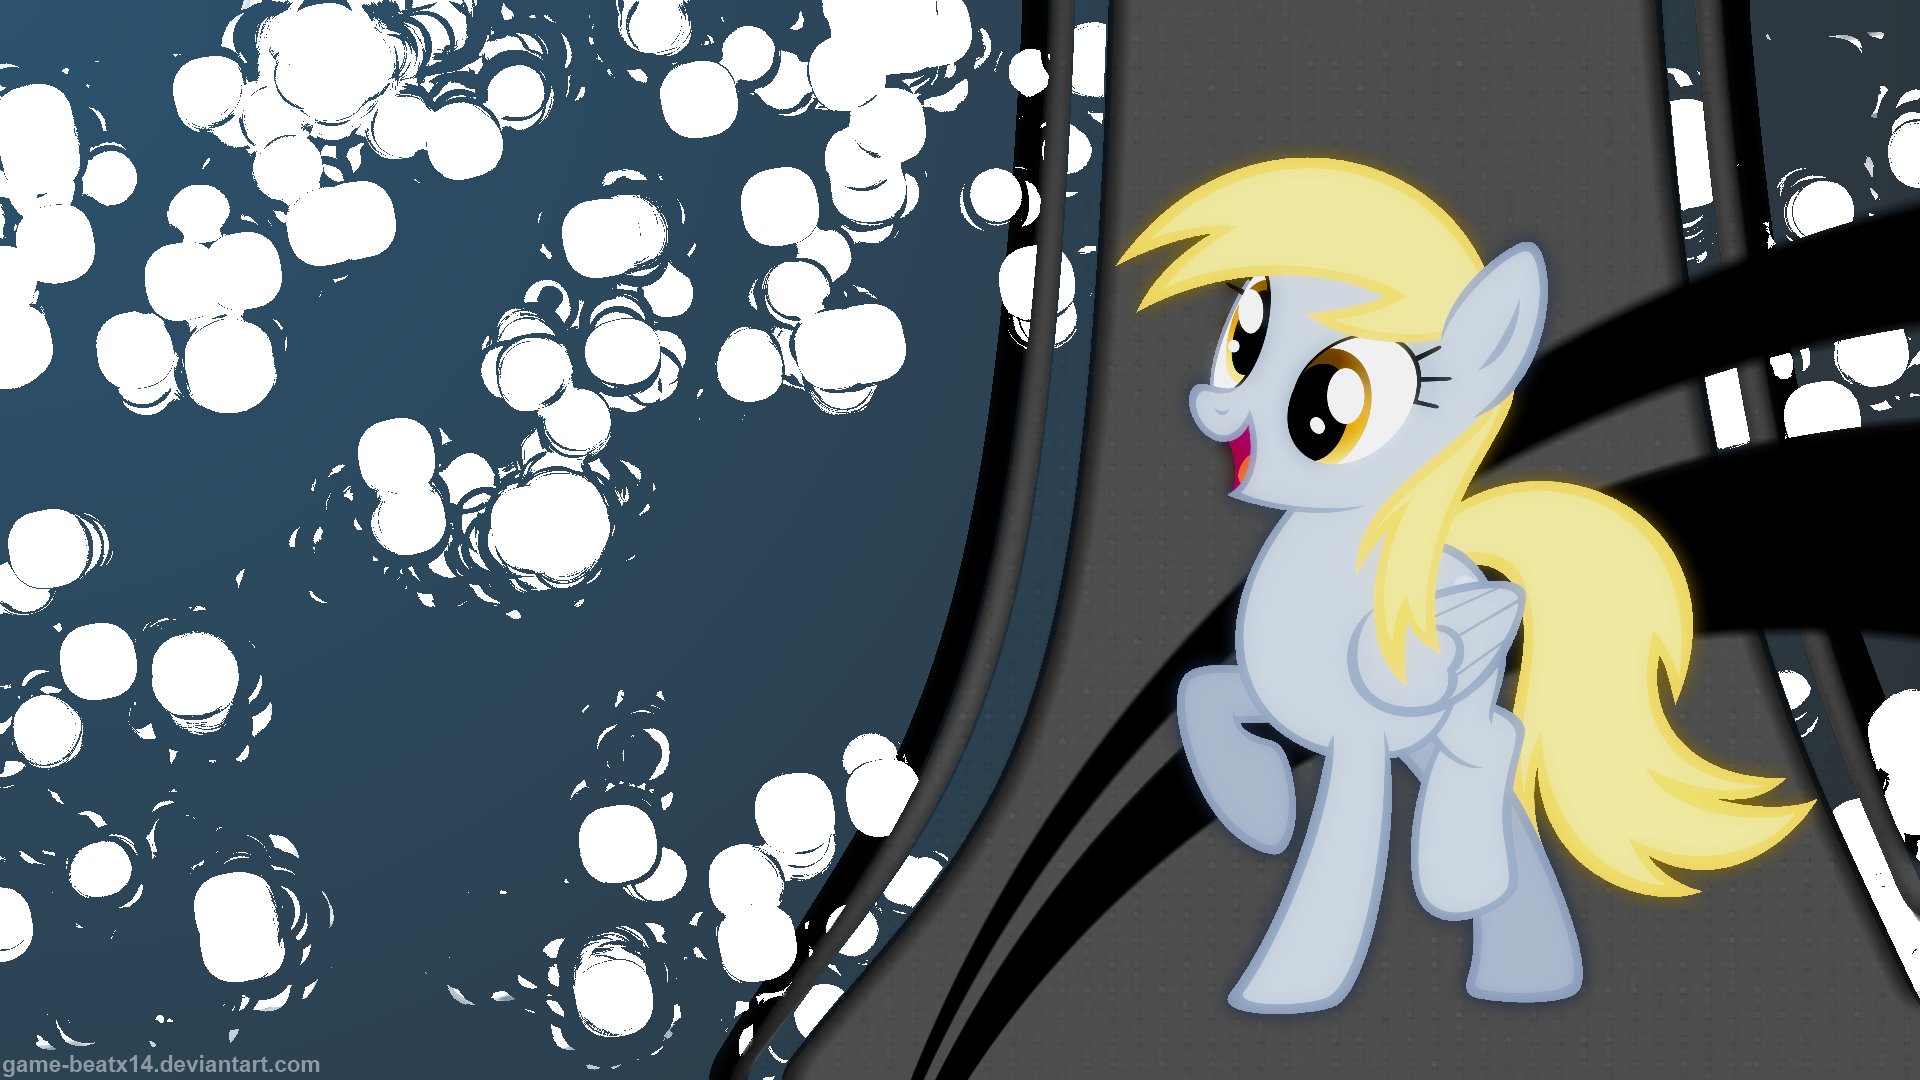 Derpy Hooves Wallpaper By Game BeatX14 And NabbieKitty